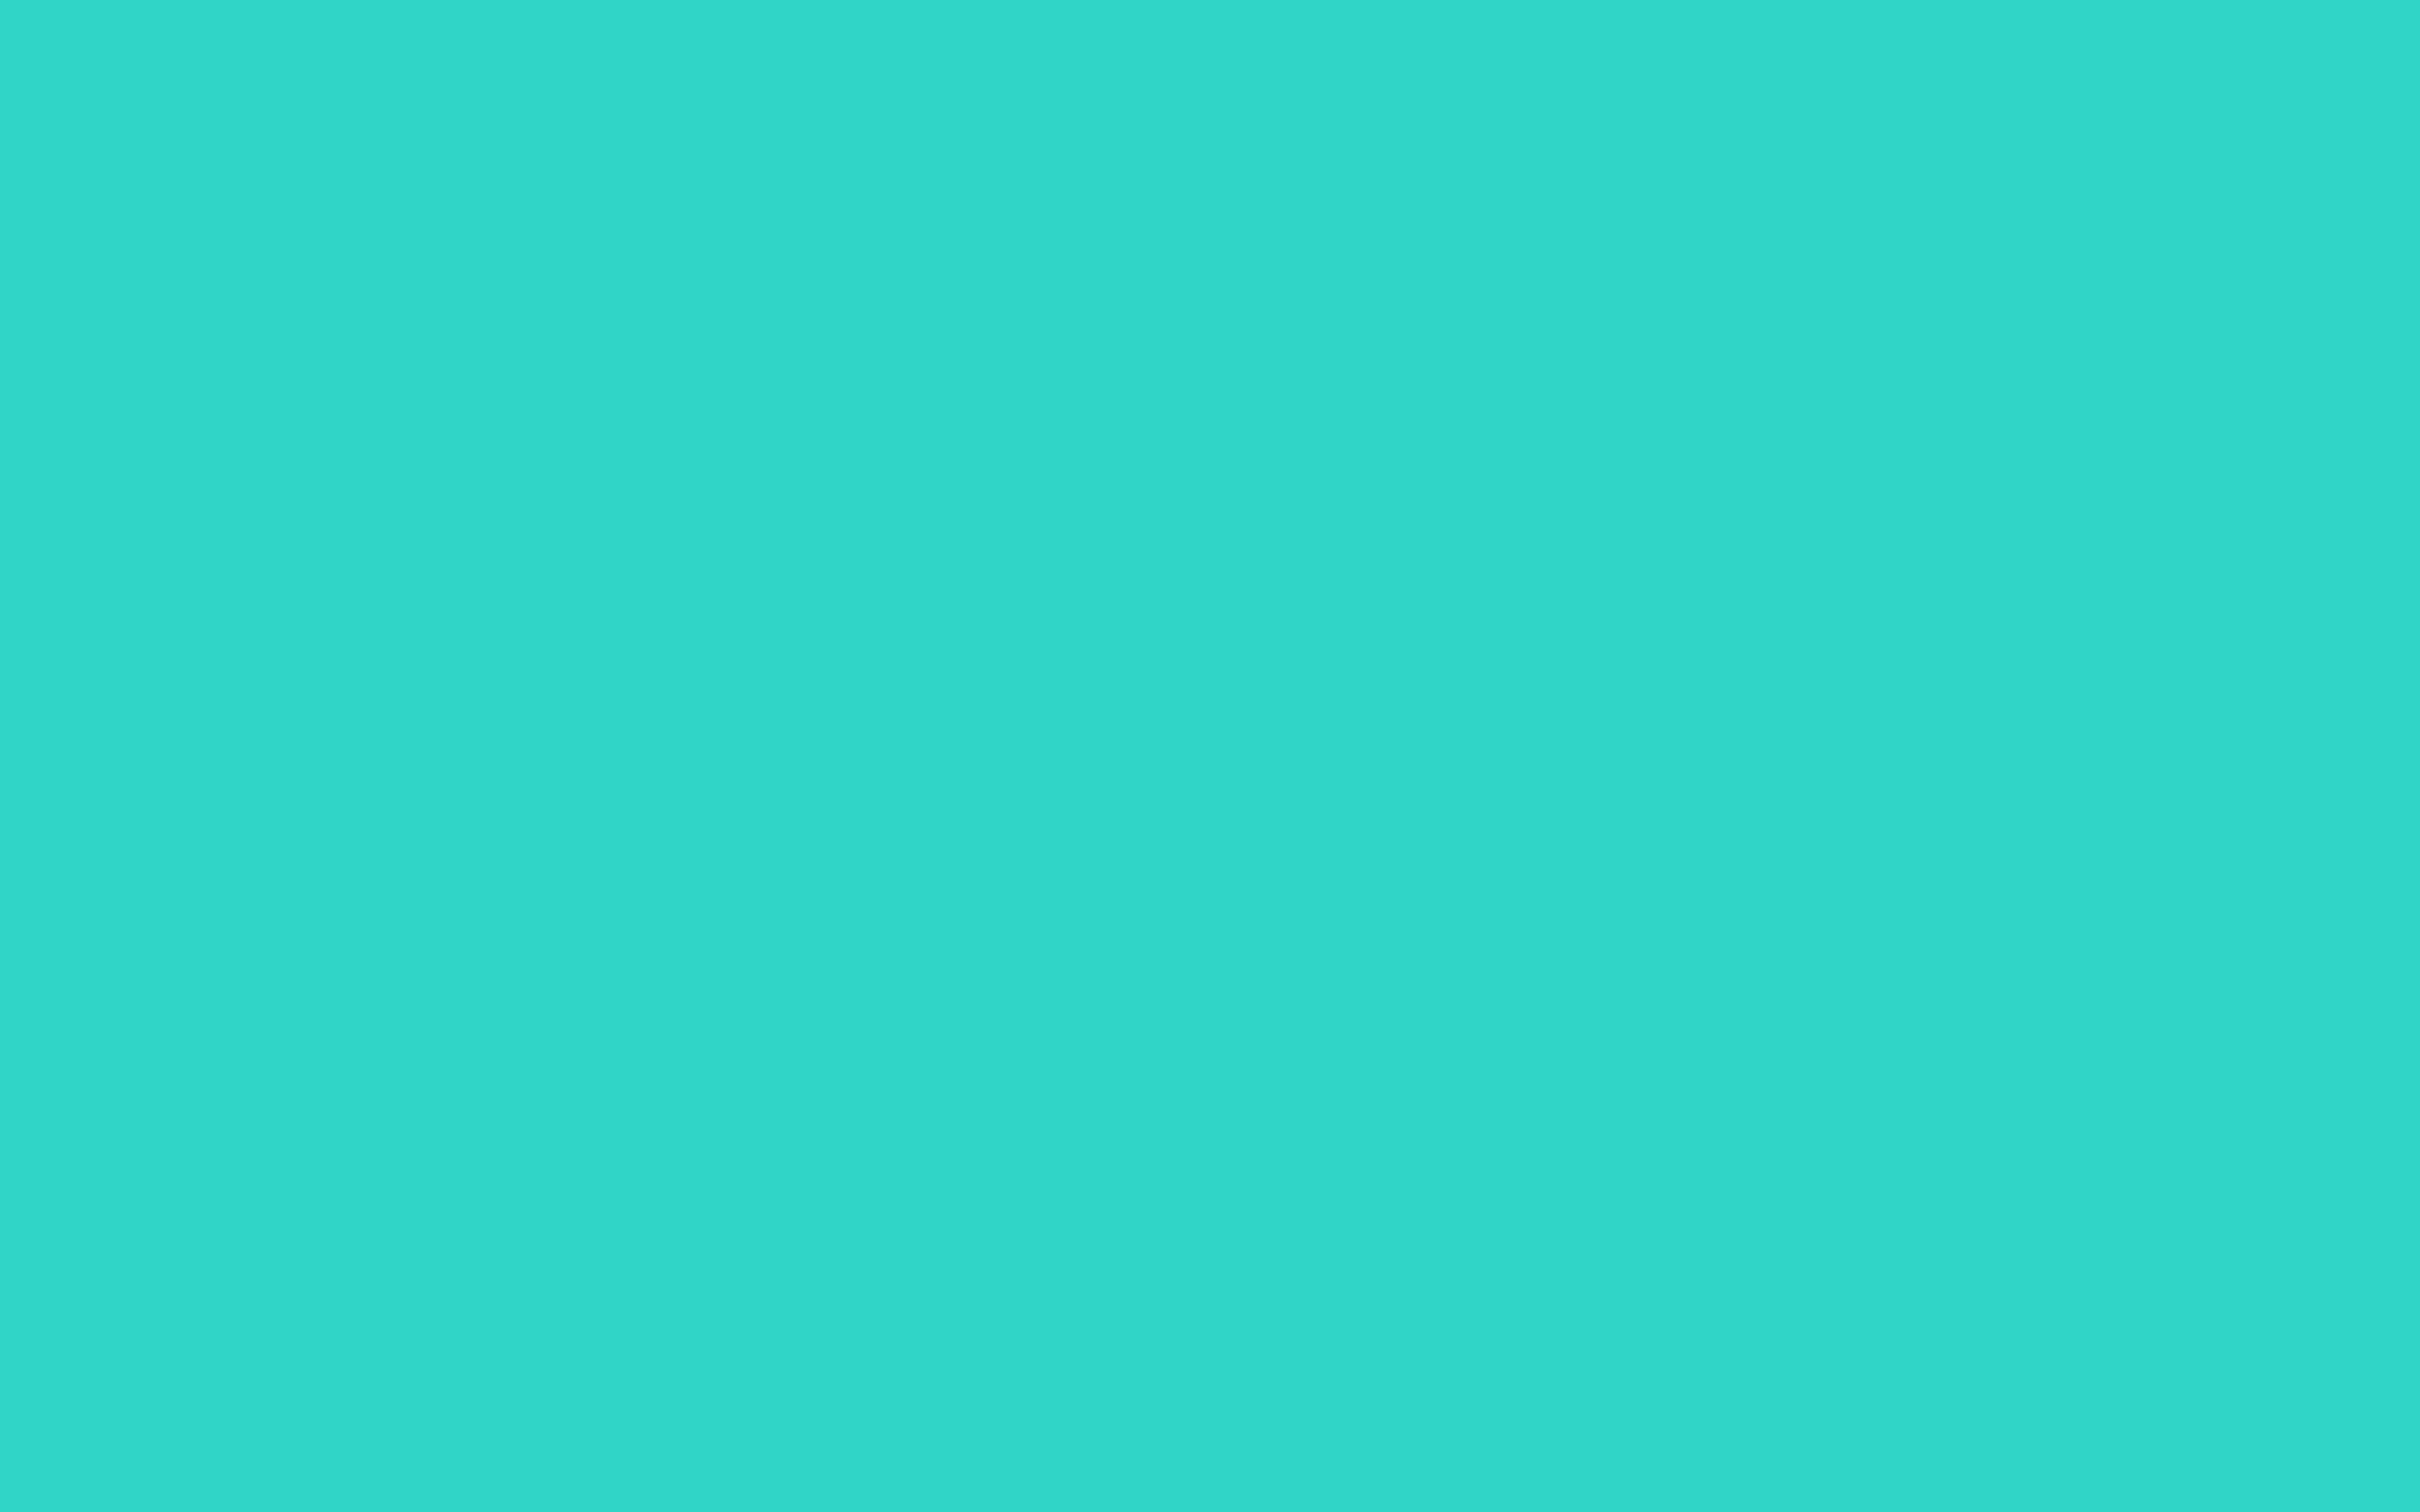 2560x1600 Turquoise Solid Color Background